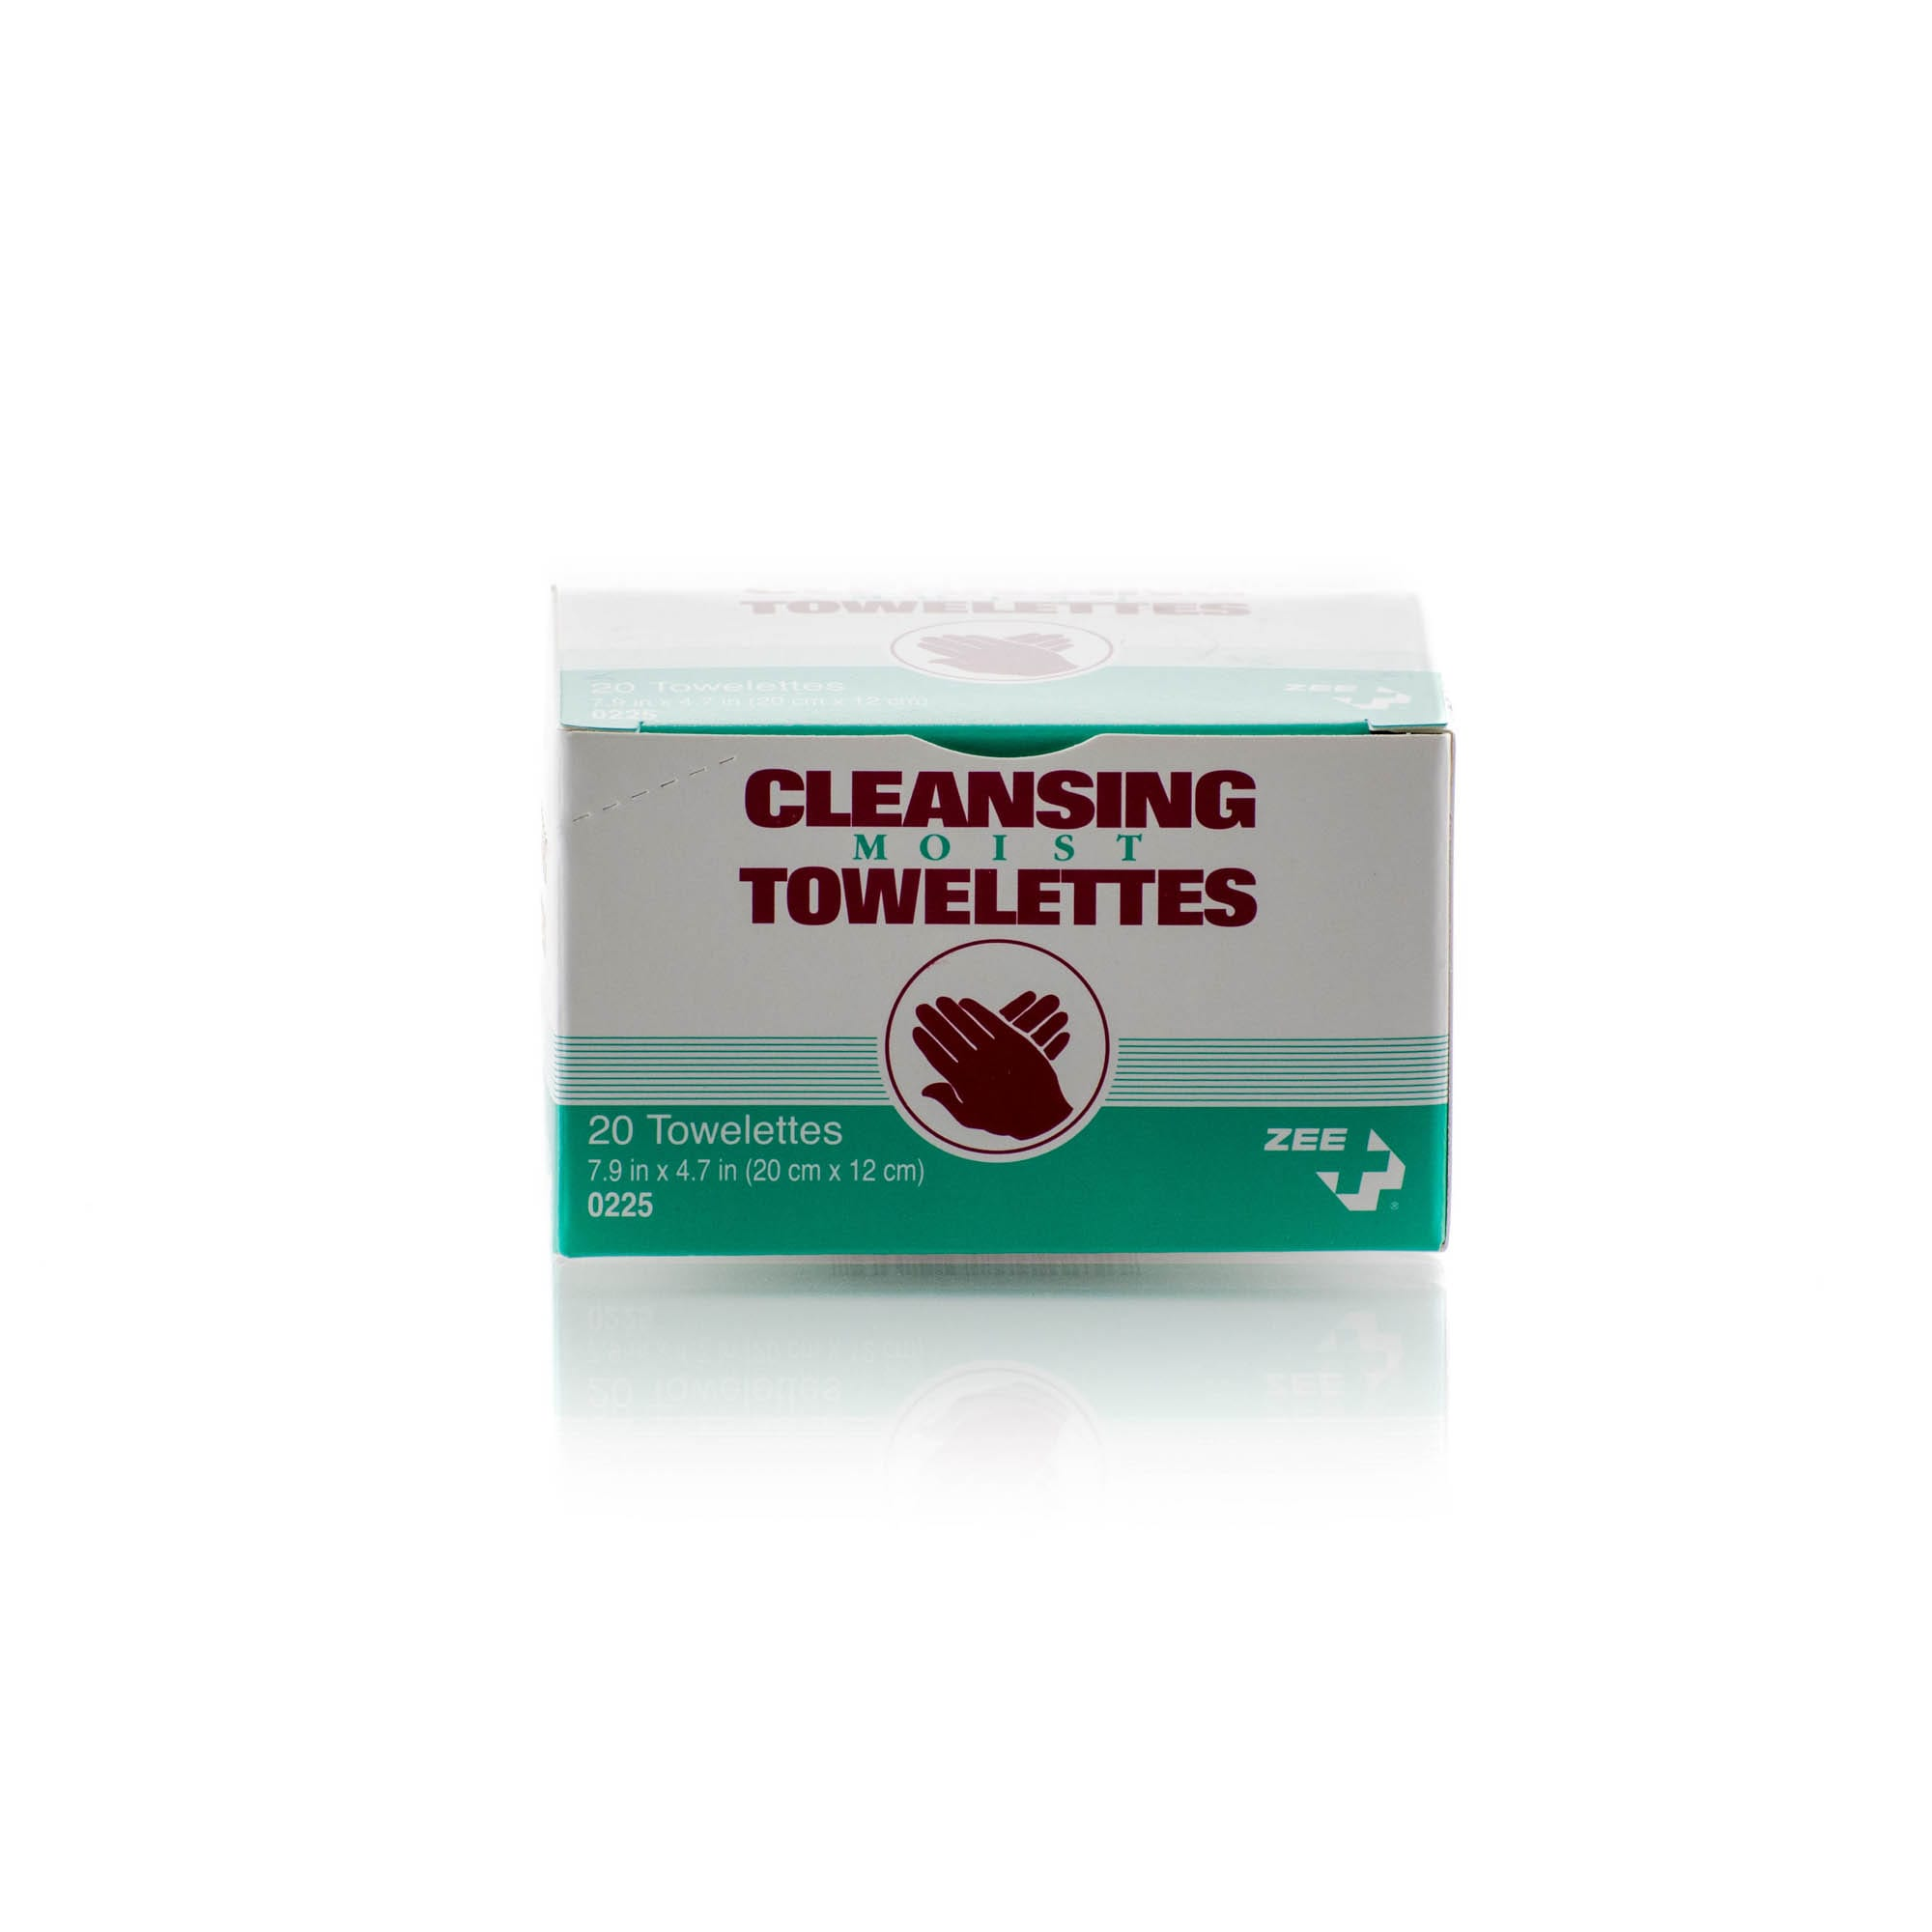 cleansing moist towelettes 20